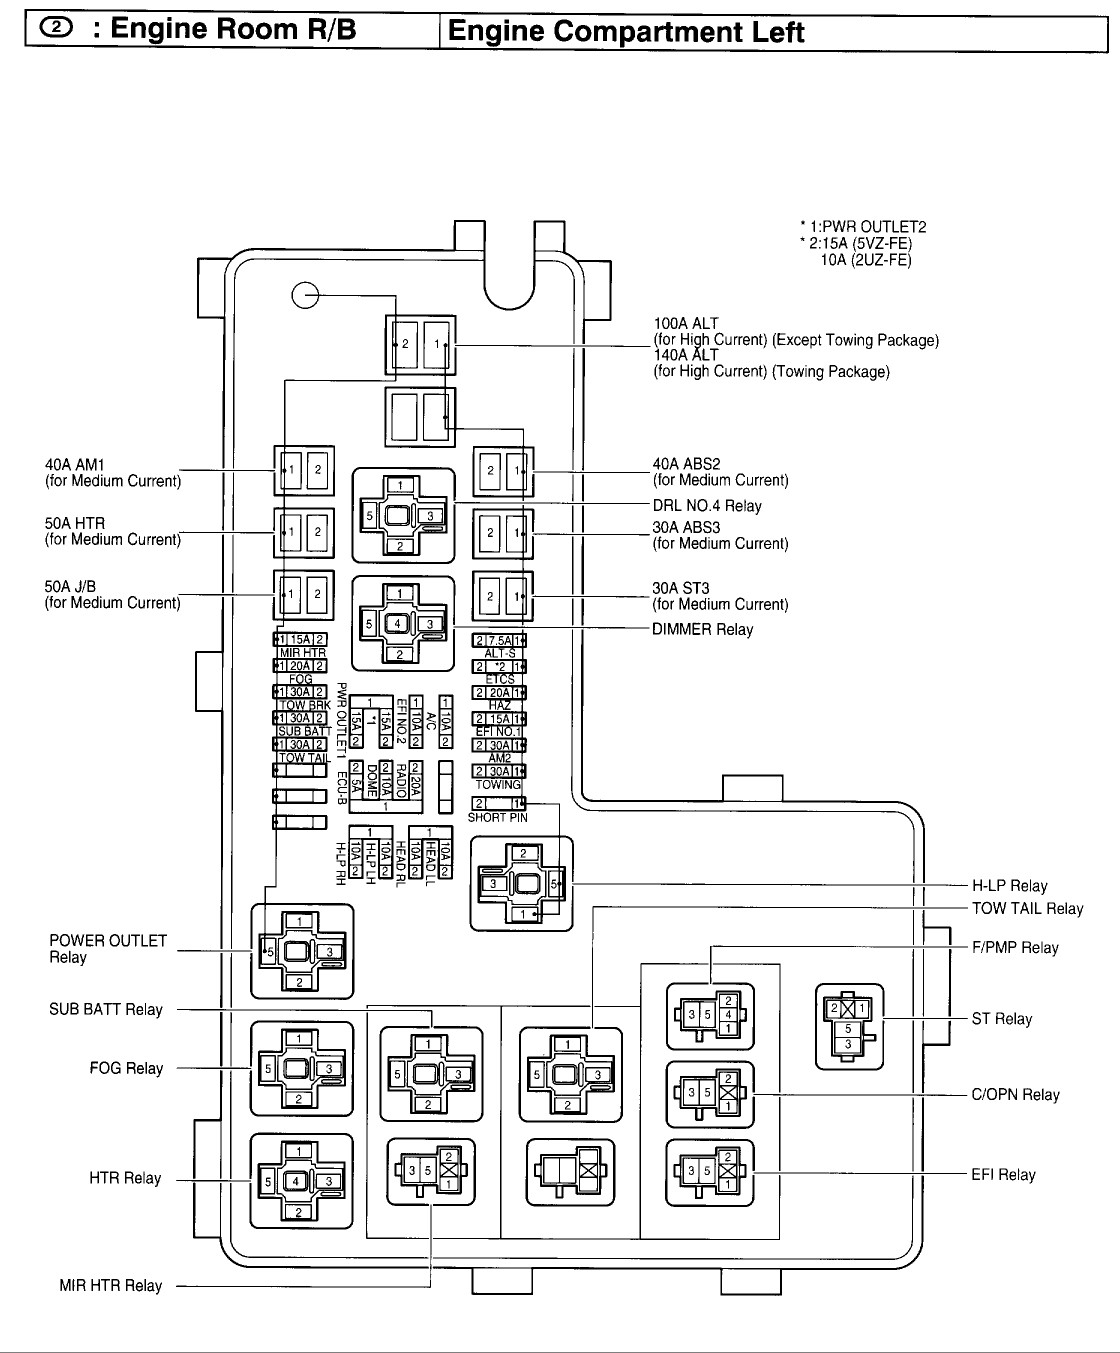 2007 toyota tundra wiring diagram Download-Inspiration Toyota Tundra Fuse Diagram  2007 2008 Wiring 9